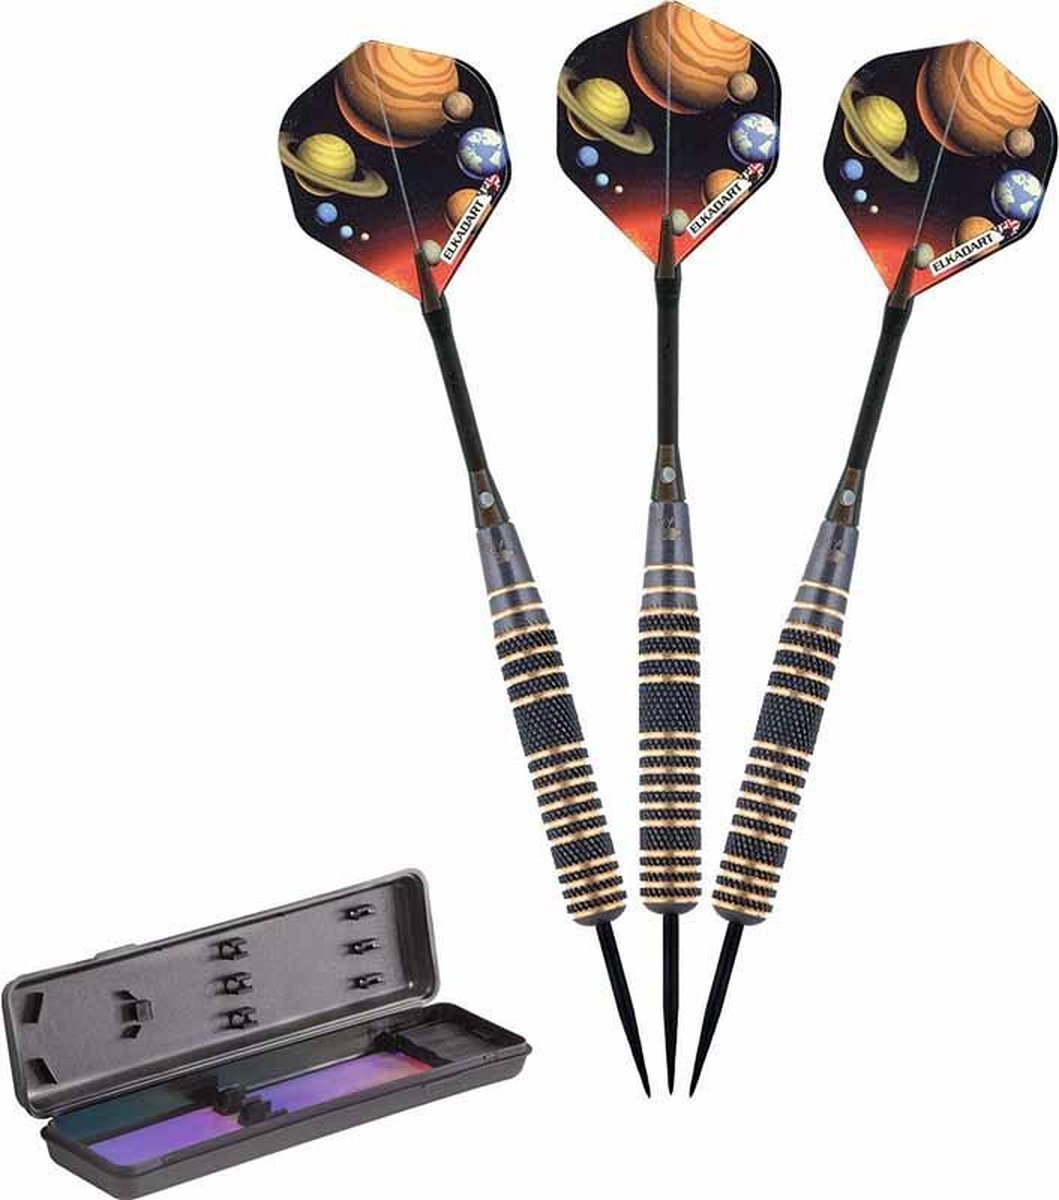 ABC Darts - Dartpijlen supergrip - Orbital space - 24 gram